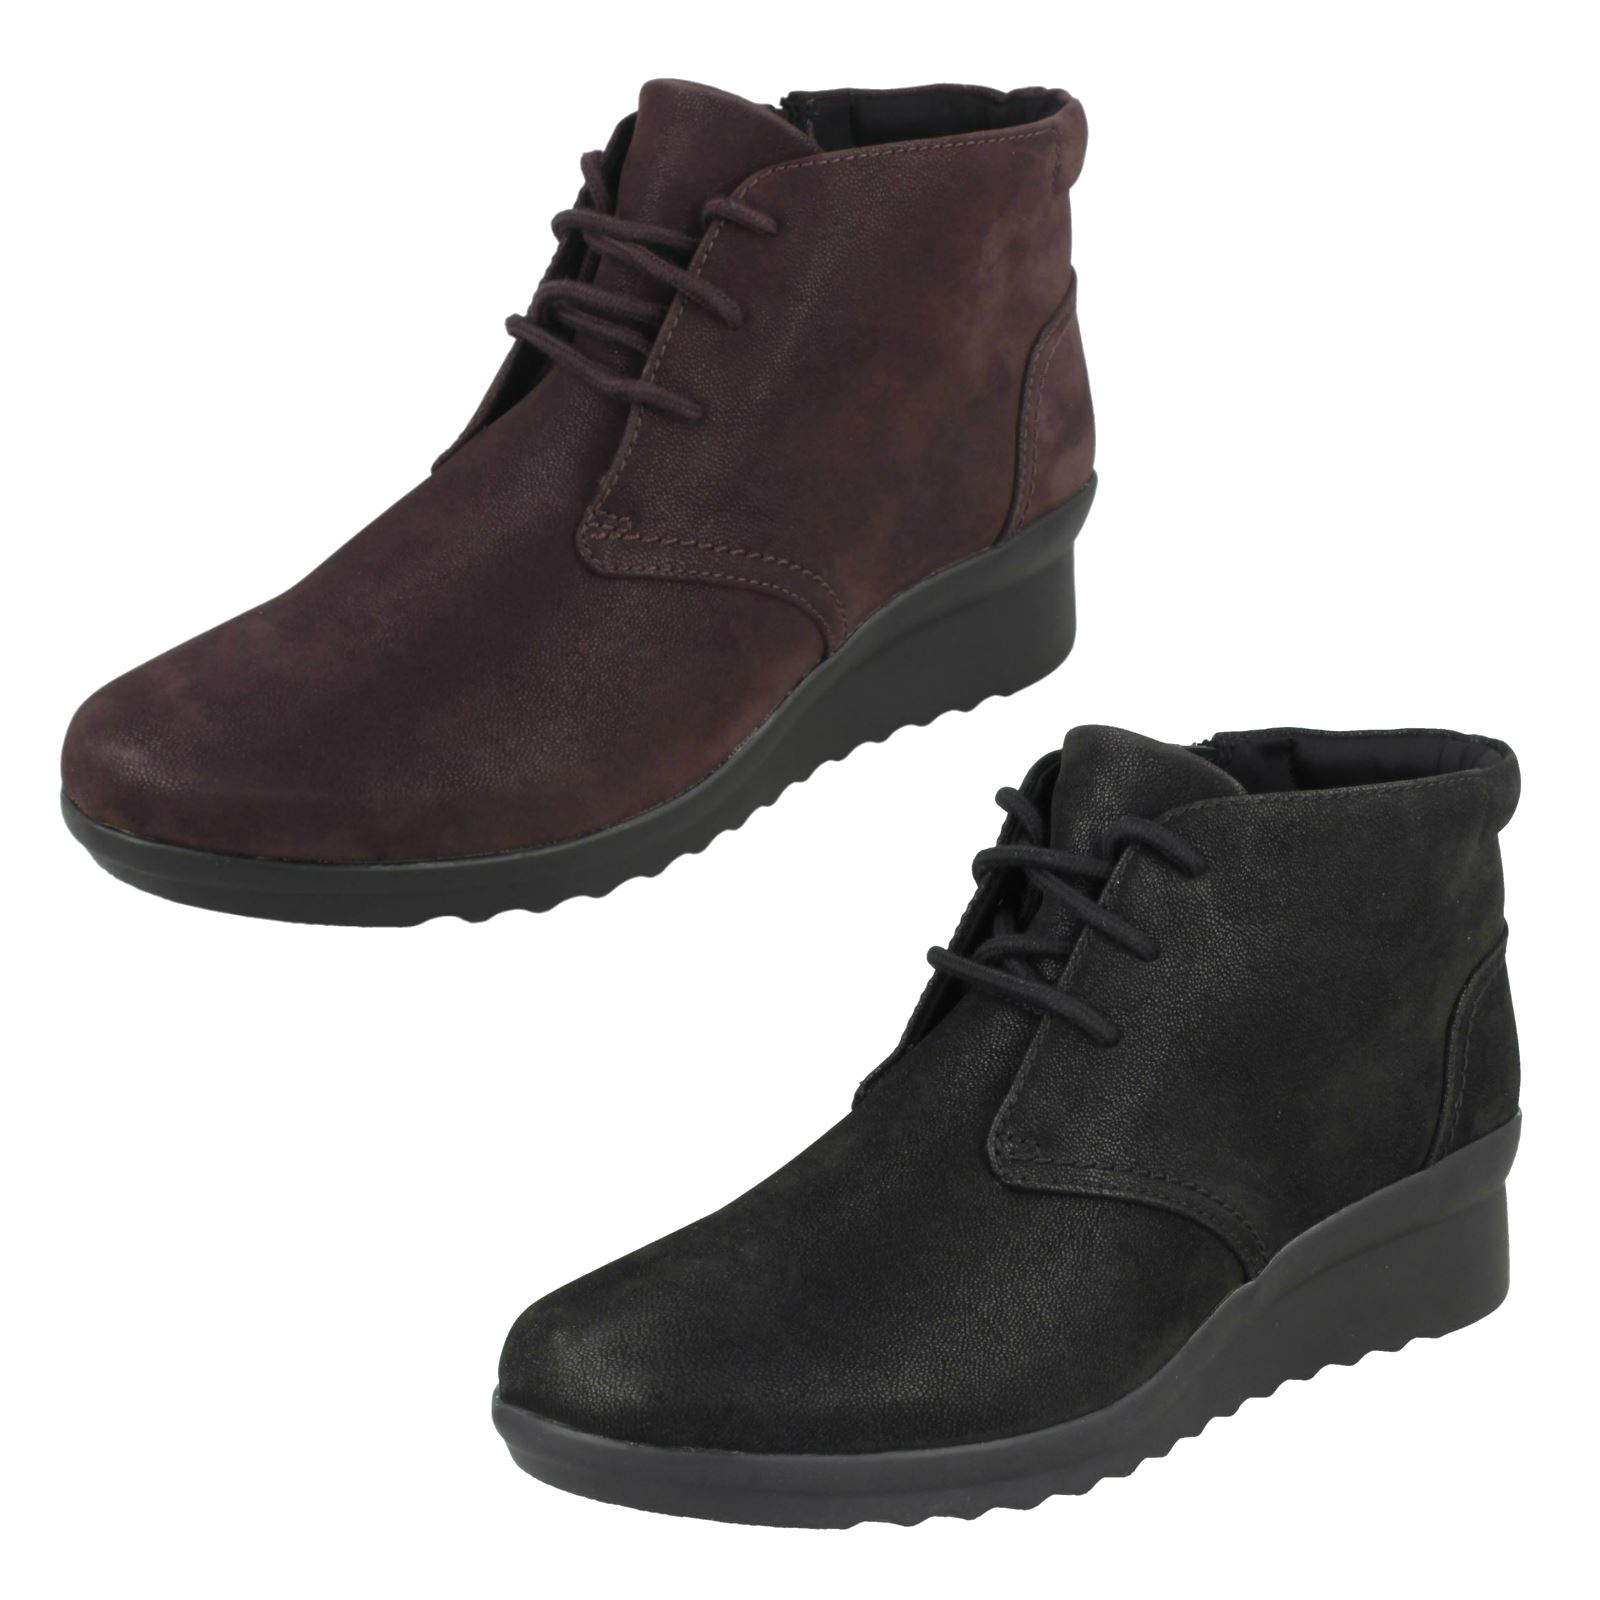 Ladies Clarks Cloudsteppers Casual Wide Fit Lace Up Wedged Boots Caddell Hop